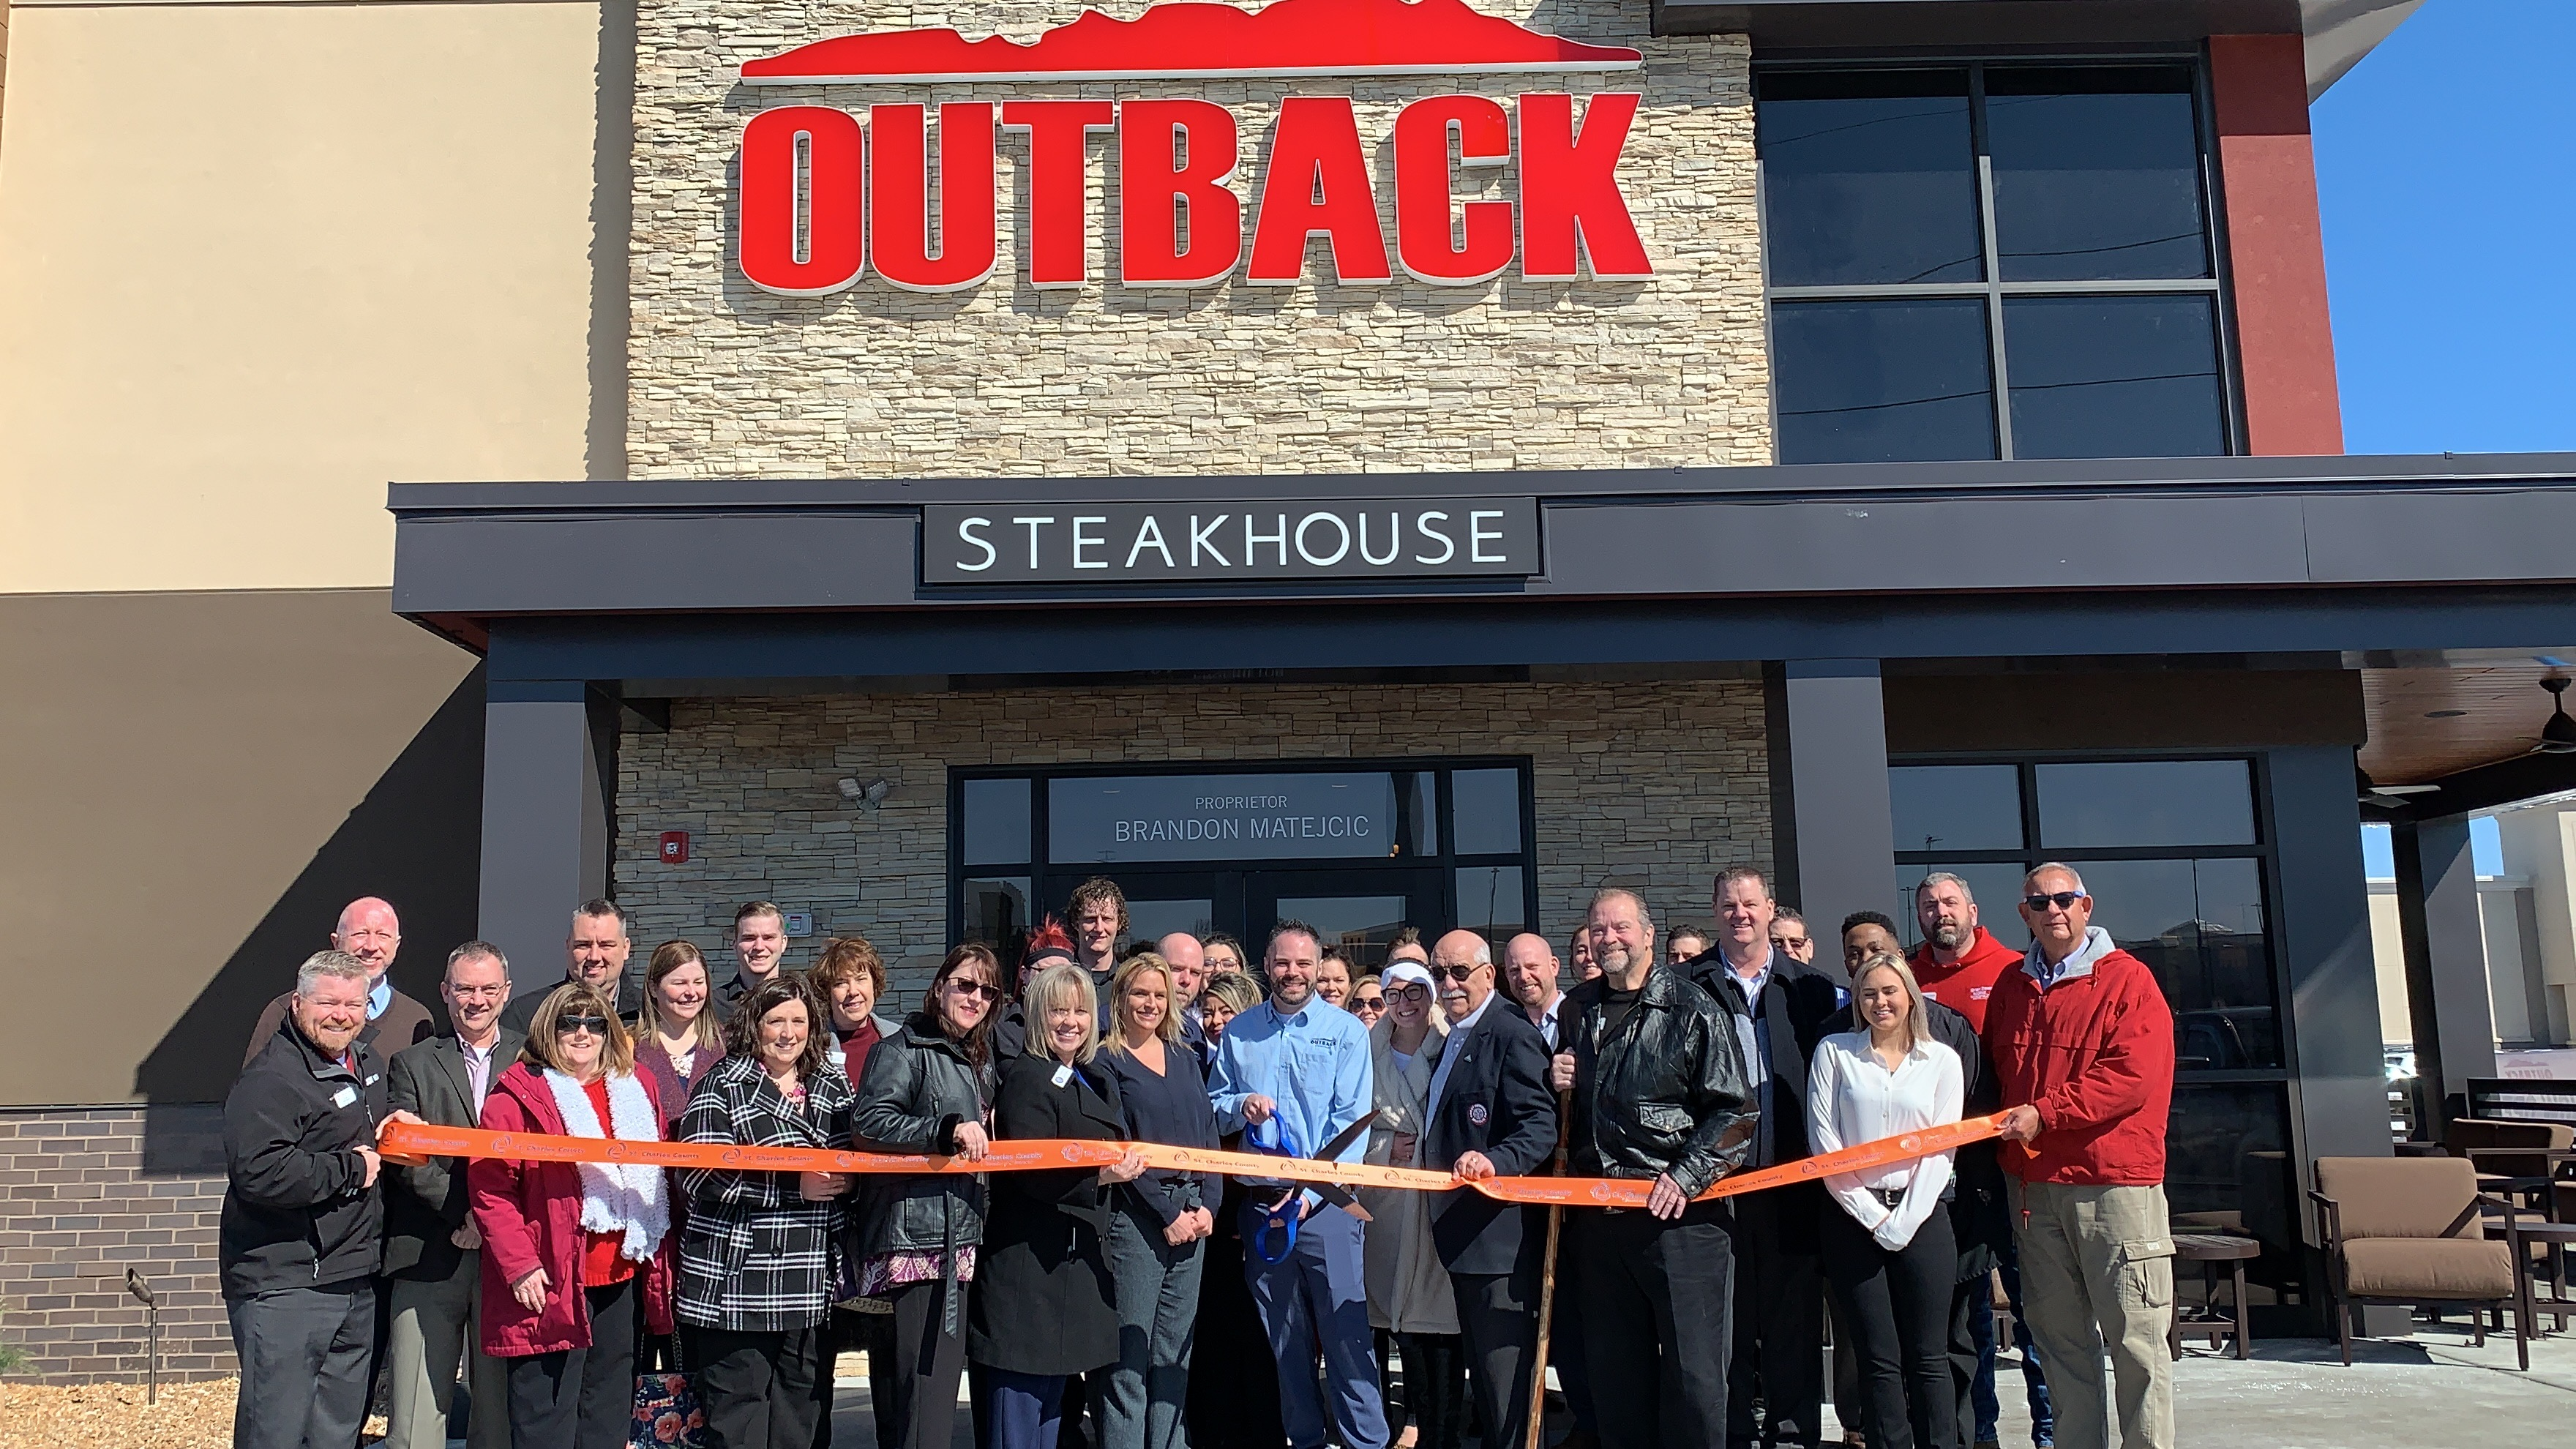 Outback Steakhouse Celebrates Grand Opening with Ribbon Cutting